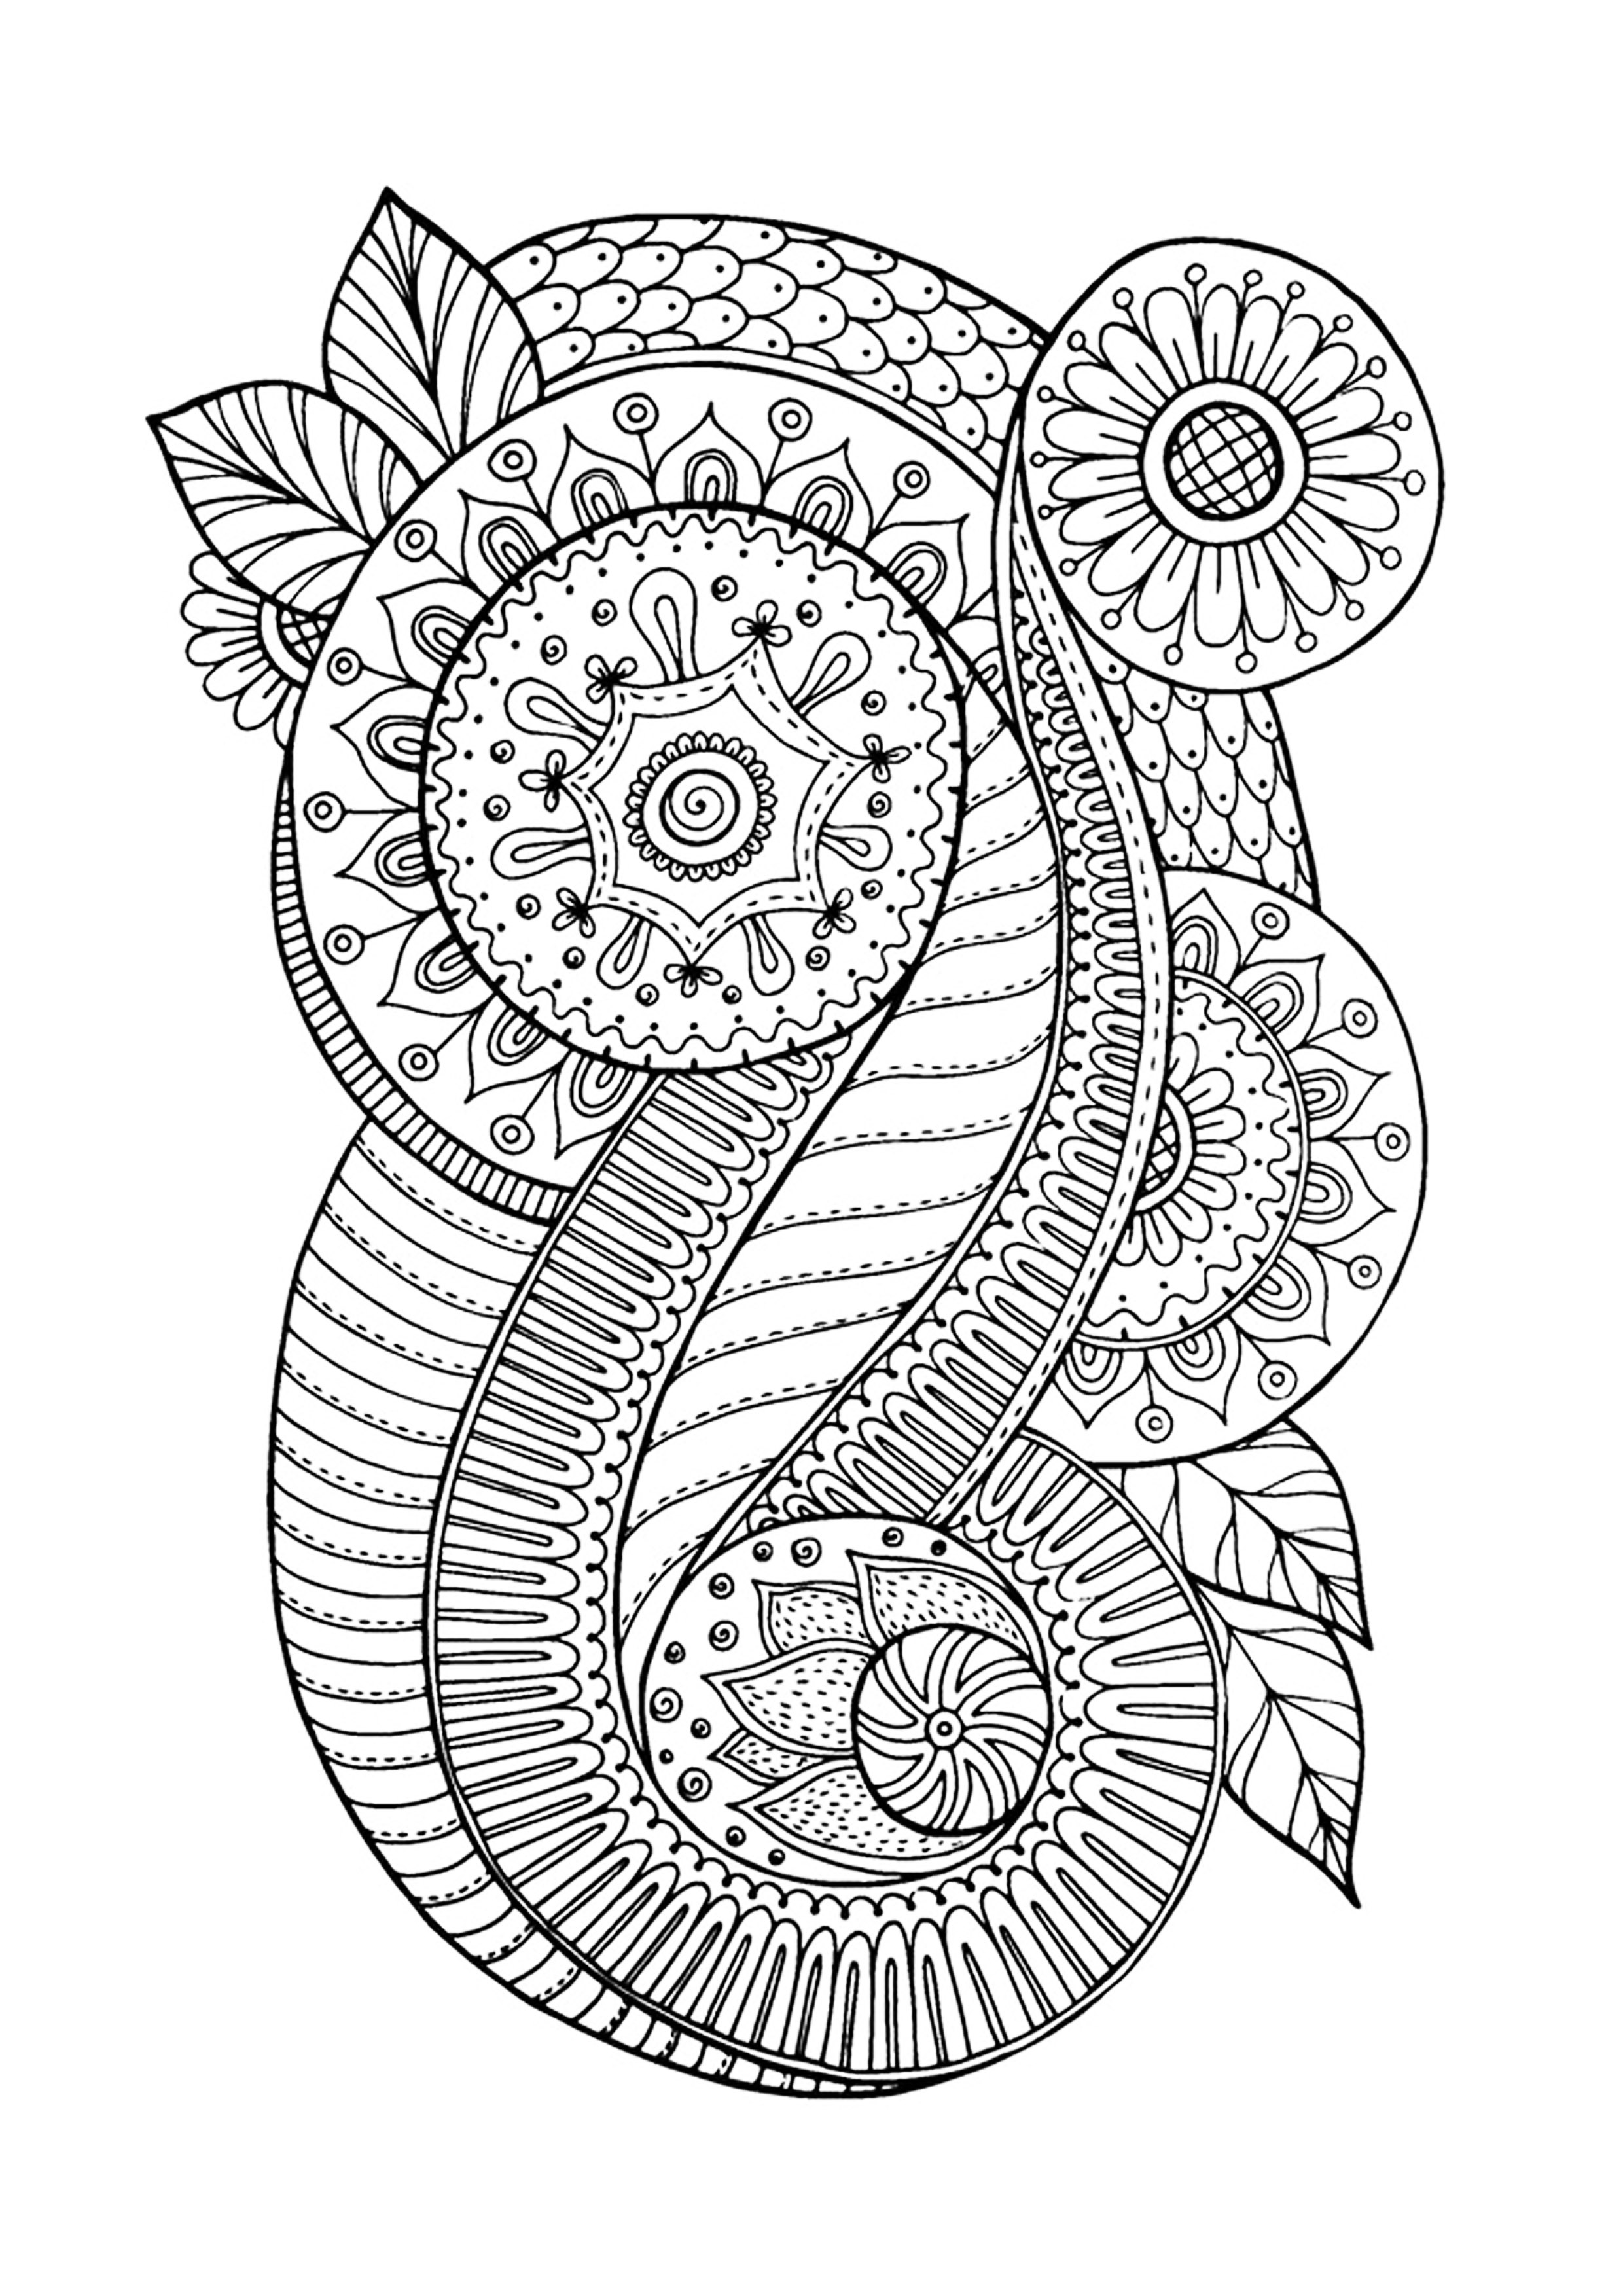 Anti stress colouring pages for adults - Zen Anti Stress Coloring Page Abstract Pattern Inspired By Flowers N